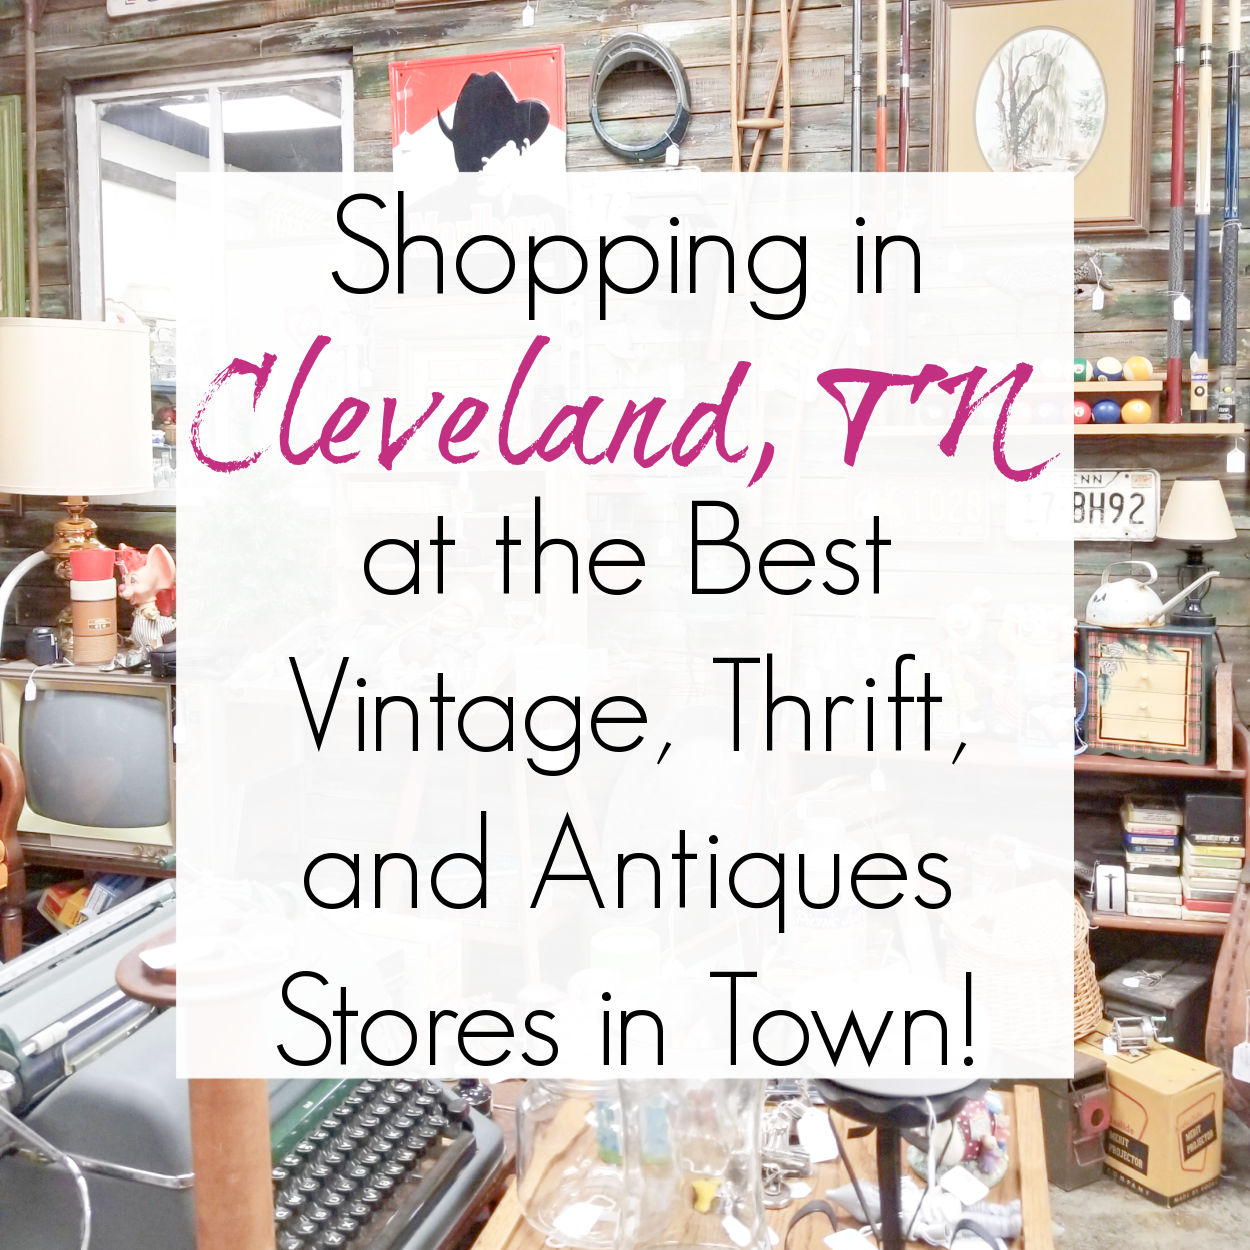 Antiquing in Cleveland, TN